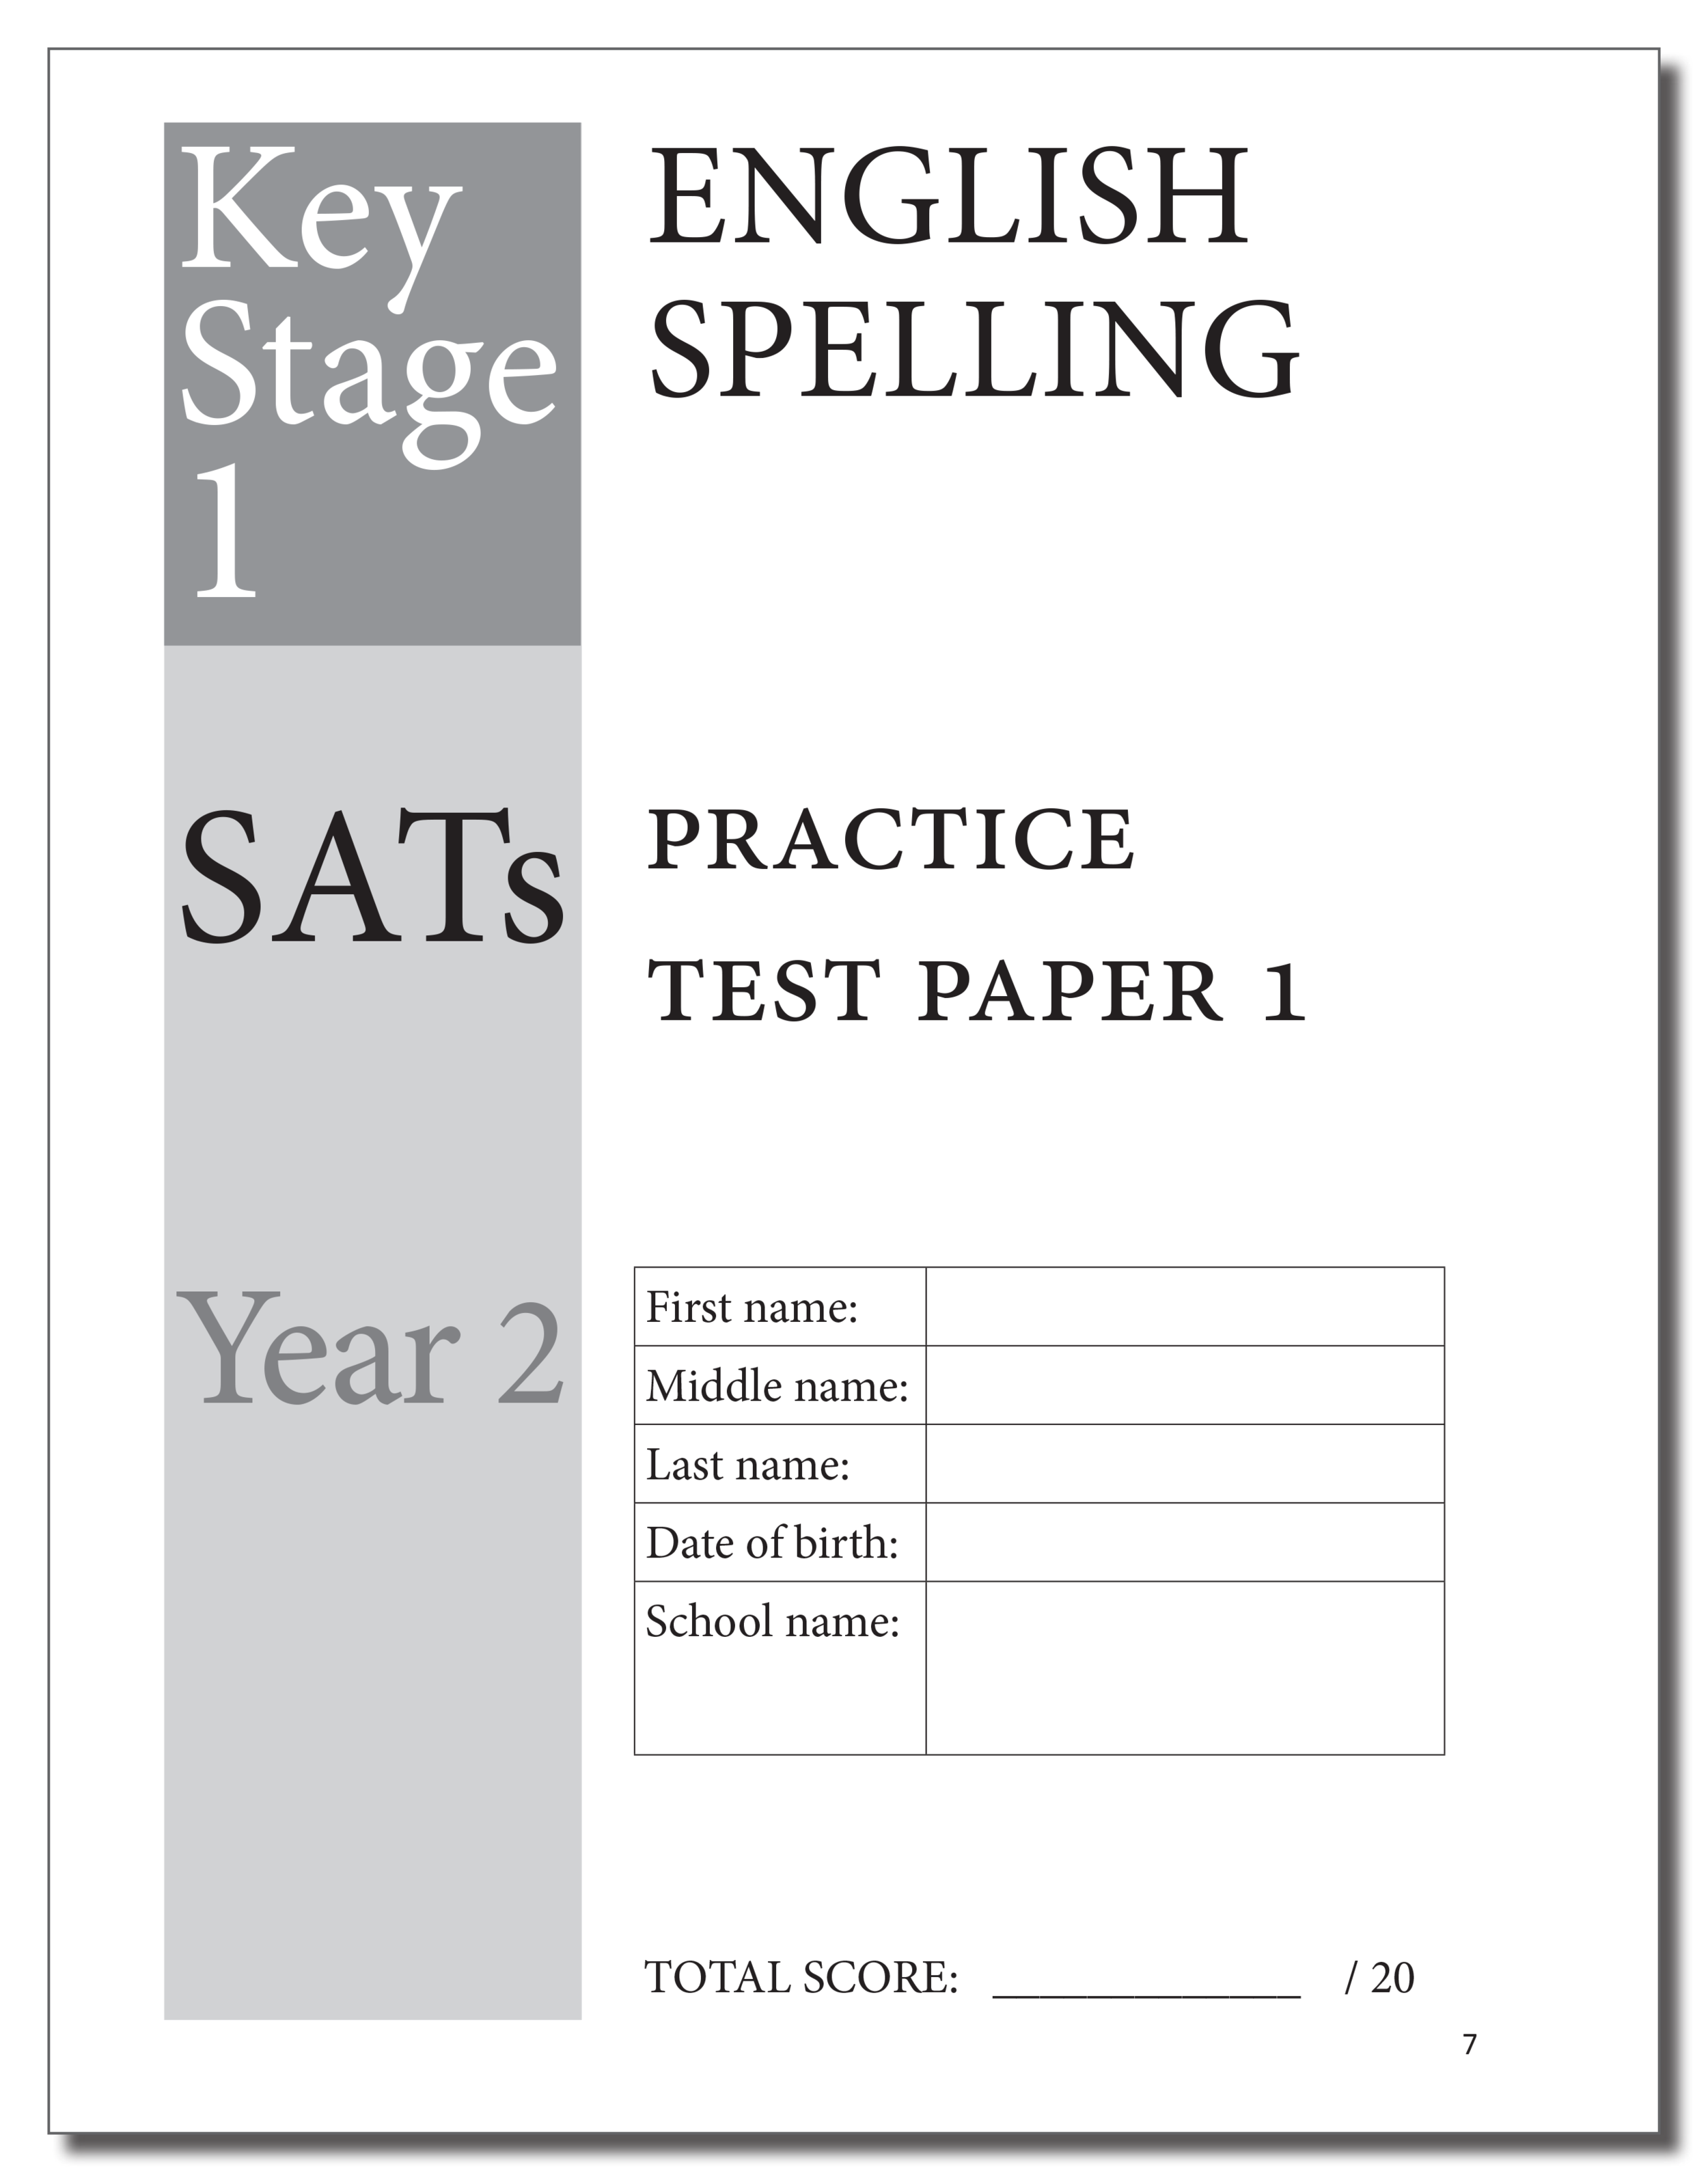 pagepreviewks1spellingtests2017p07.png